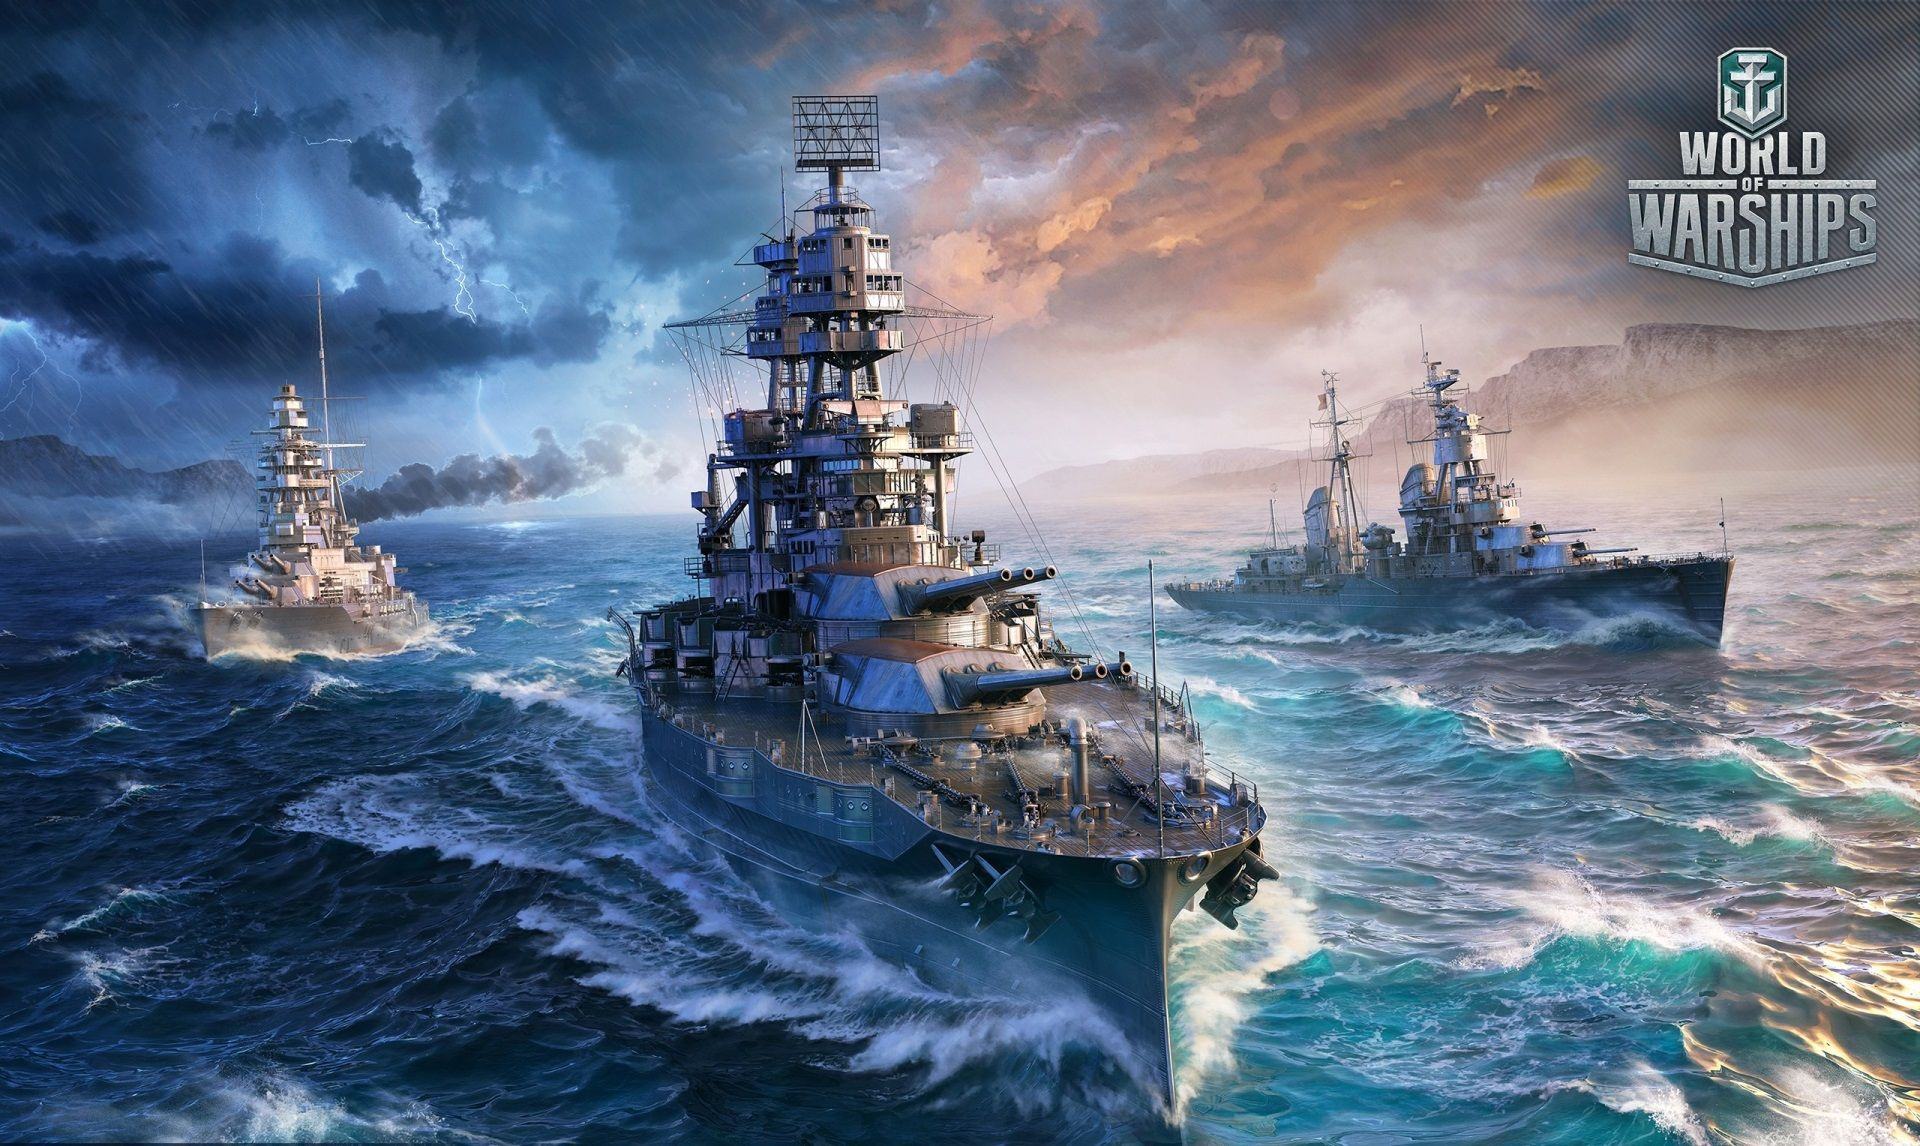 1920x1146 World Of Warships Interesting Wallpaper Hd World Of